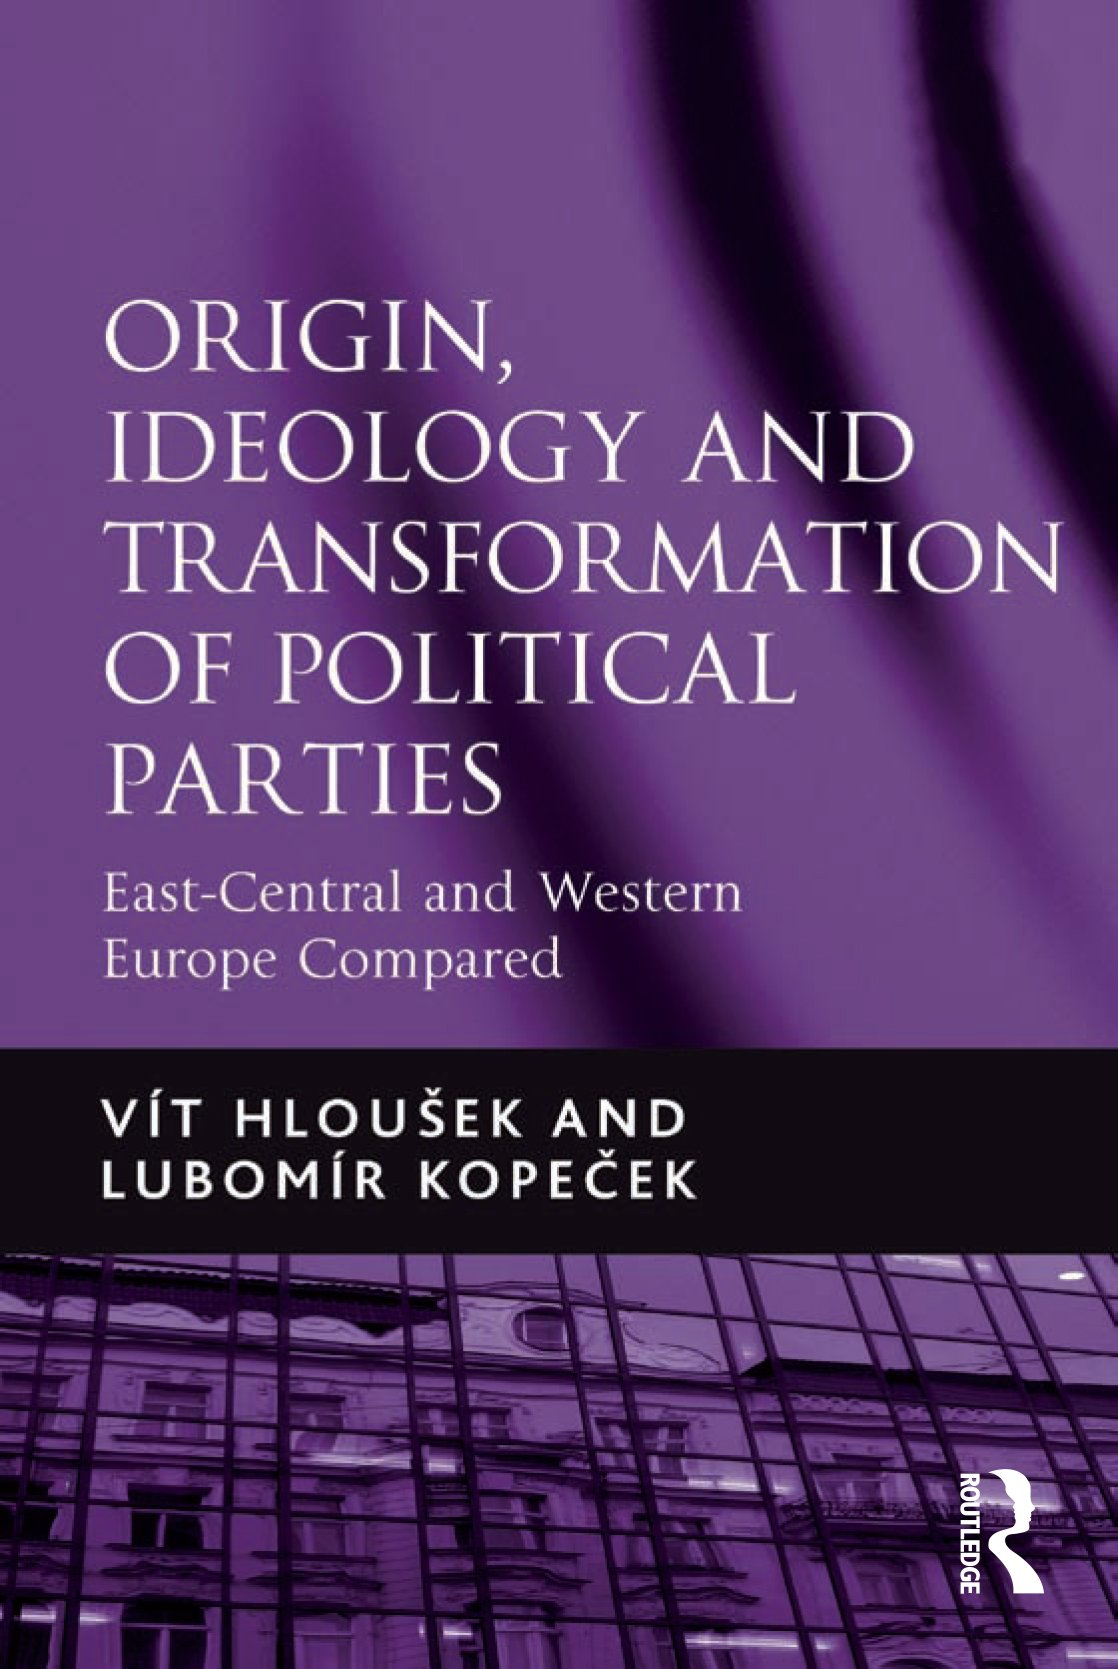 Download Origin, Ideology And Transformation Of Political Parties: East-Central And Western Europe Compared (English Edition) 